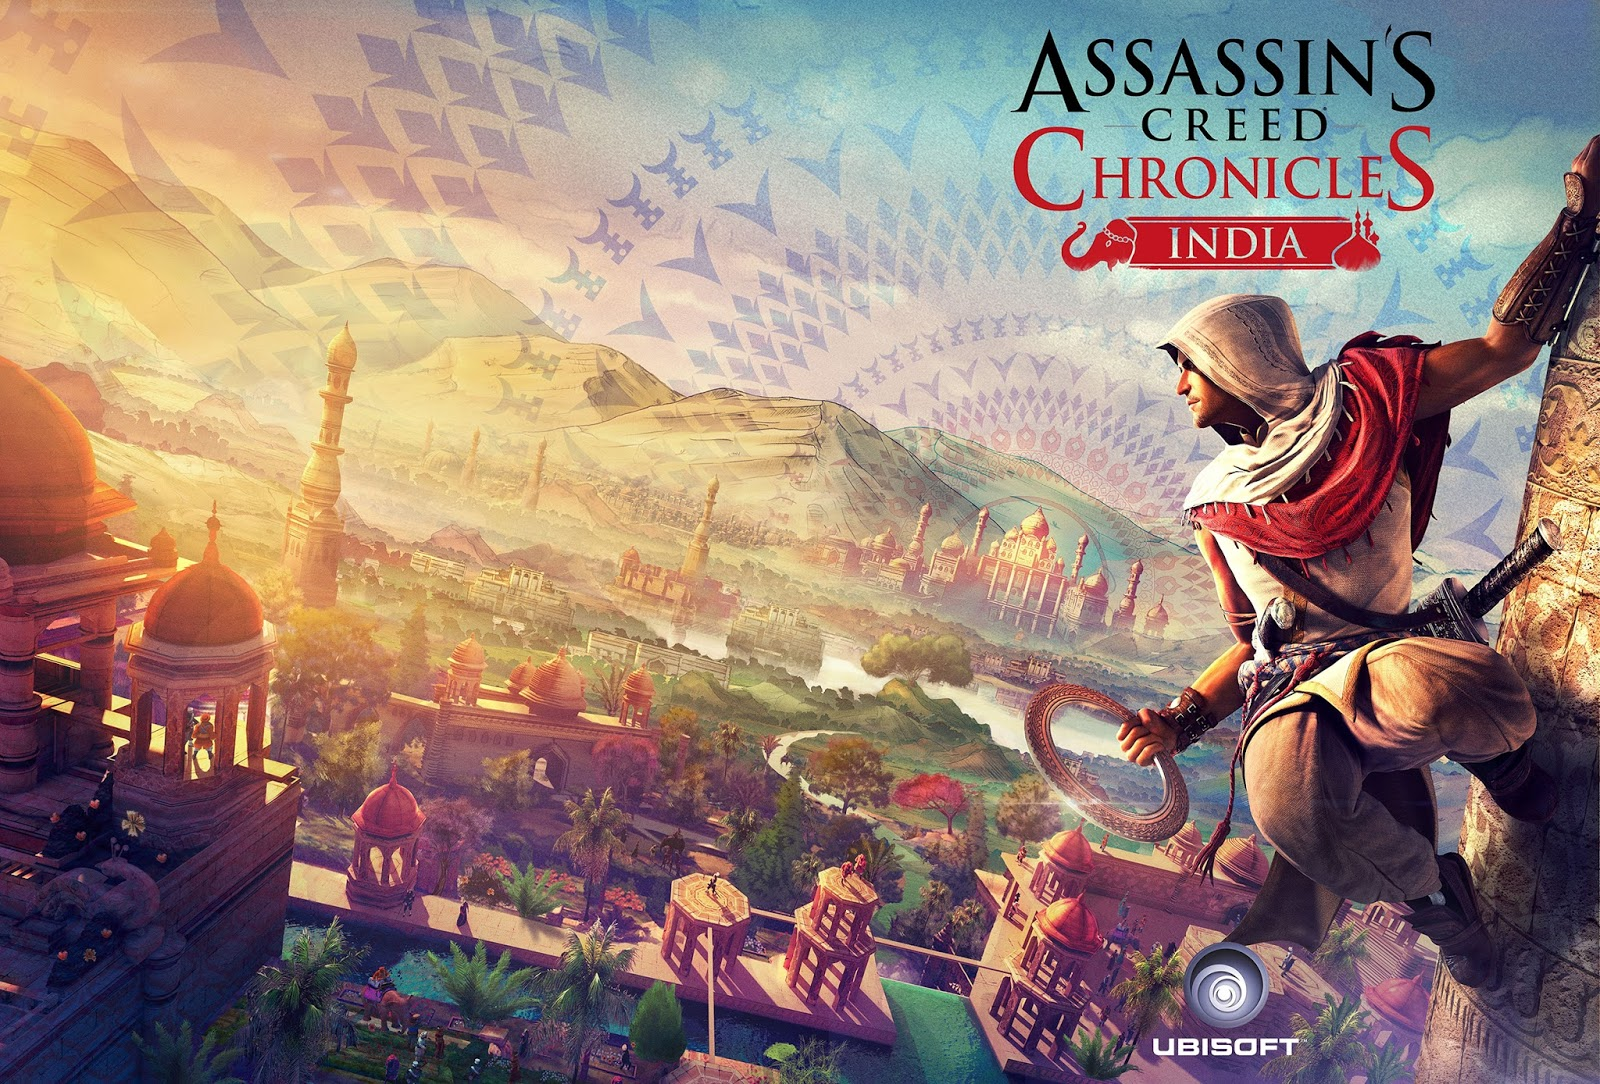 Descargar Assassins Creed Chronicles India pc full español 1 link mega.